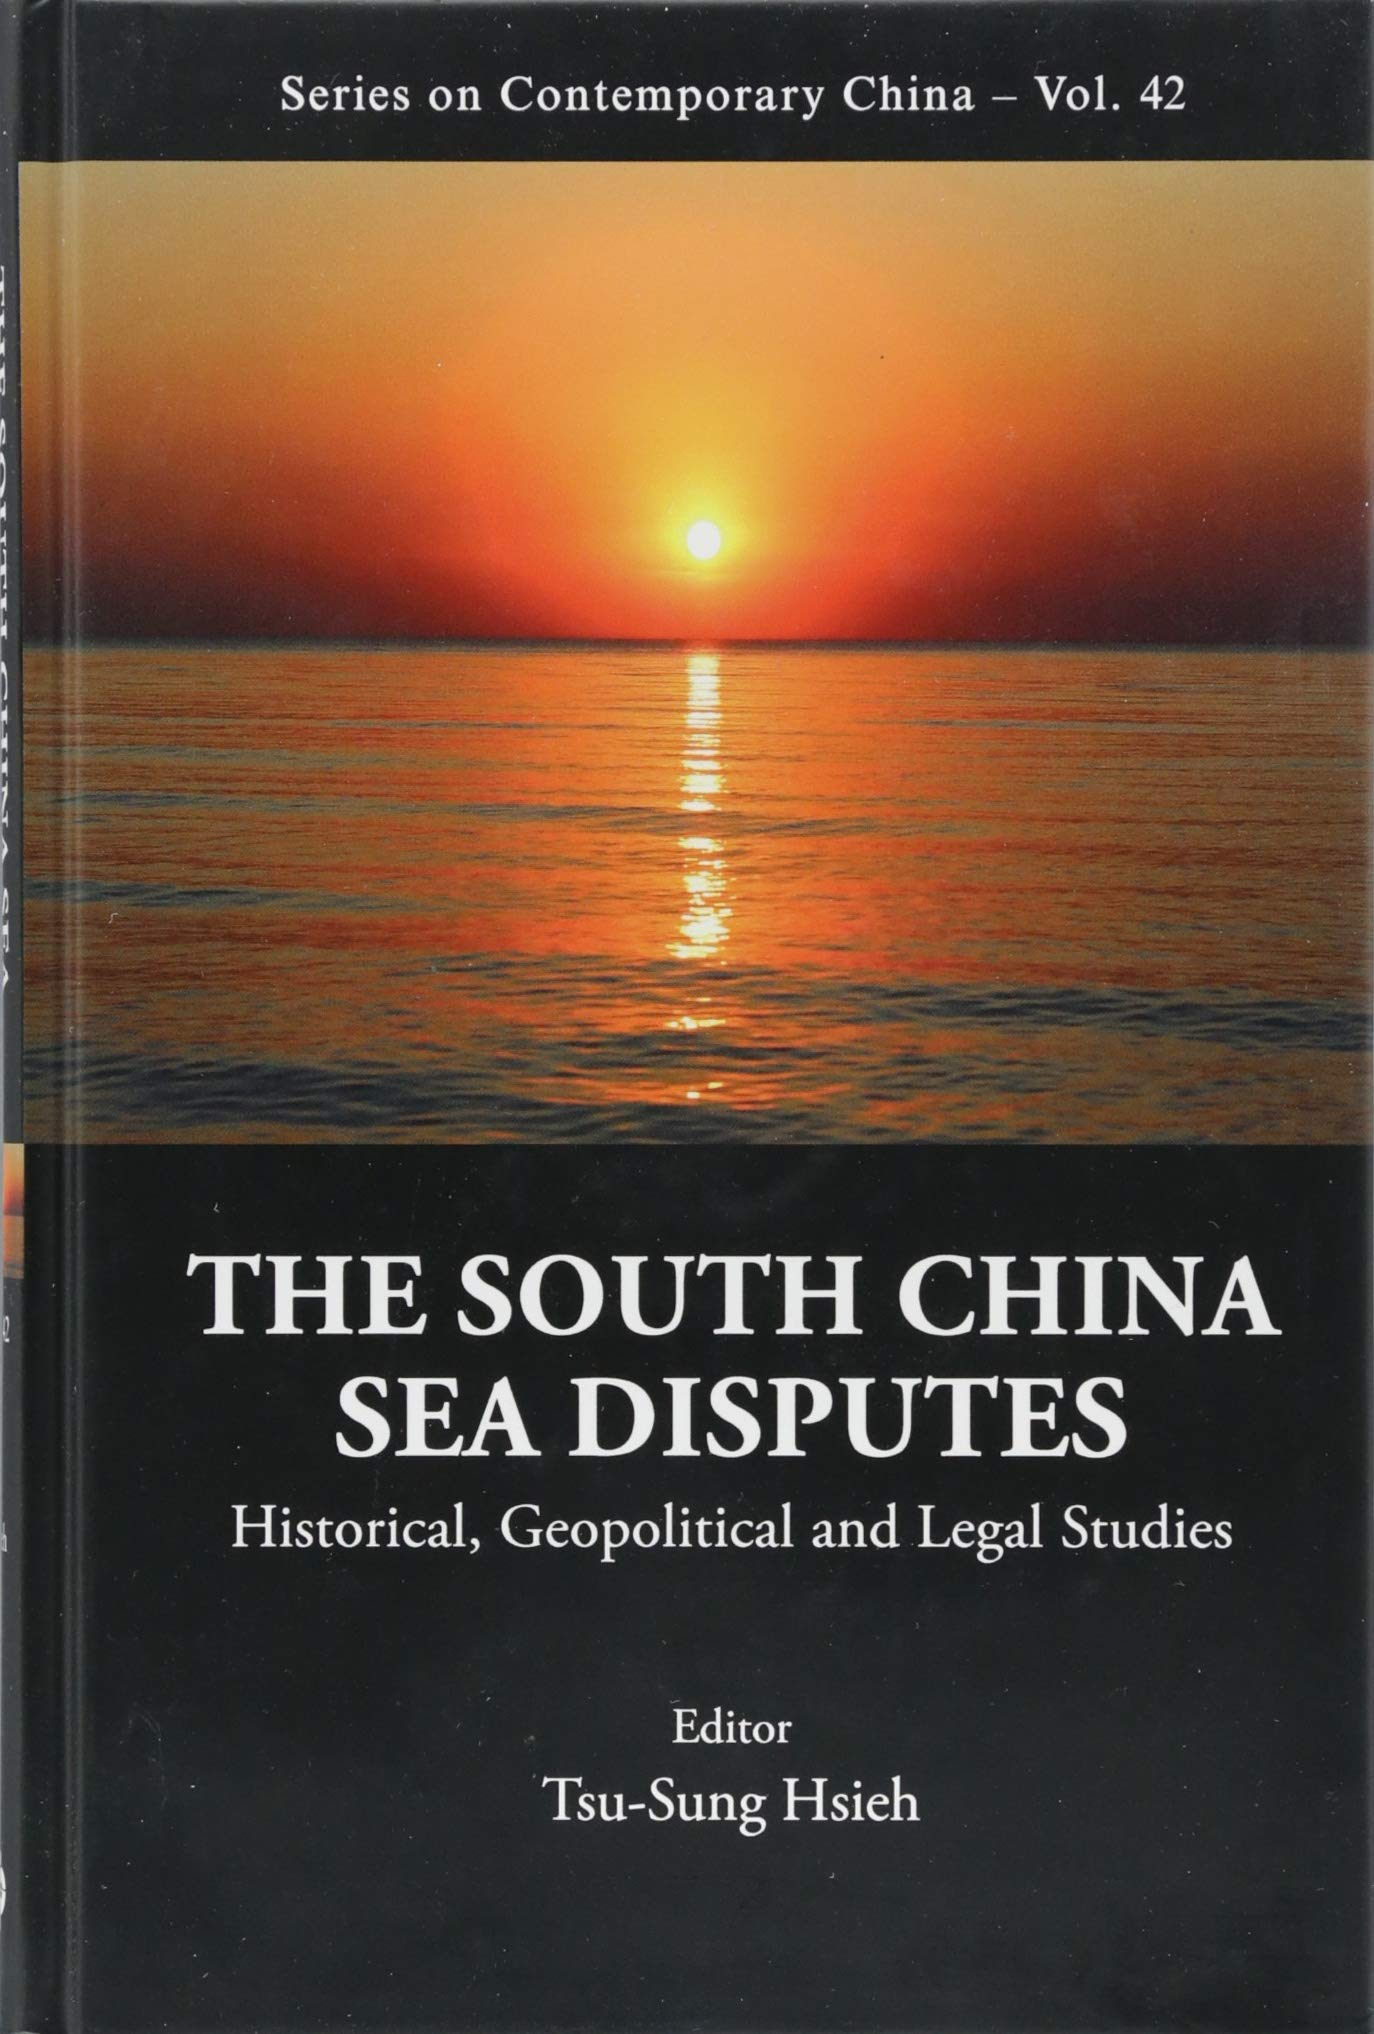 Download The South China Sea Disputes: Historical, Geopolitical and Legal Studies (Series on Contemporary China) PDF